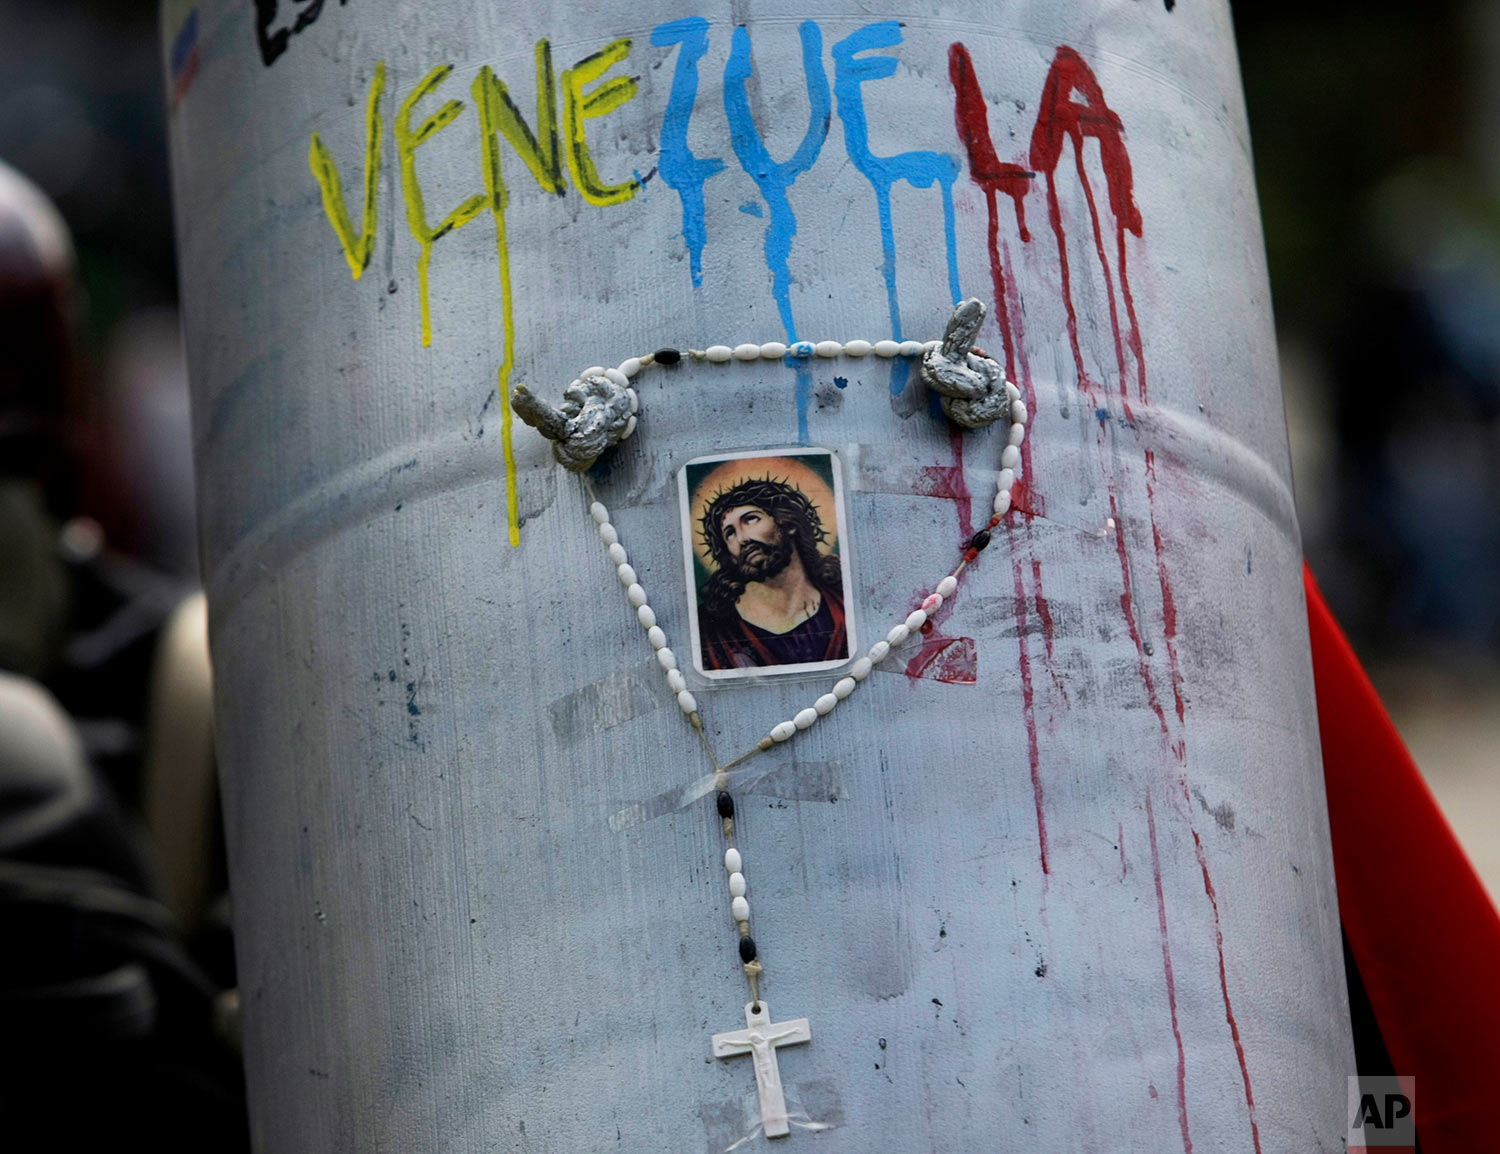 "A protester takes cover from police using this makeshift shield adorned with a rosary, a religious image and Spanish message written above: ""This fight is for you Venezuela"" during a march to the Ombudsman's Office to protest President Nicolas Maduro in Caracas, Venezuela, Monday, May 29, 2017. According to Human Rights Watch, some of the more than 5,000 people detained were beaten, sexually assaulted or given electrical shocks in what the New York-based rights group describes in a report as a level of repression ""unseen in Venezuela in recent memory."" (AP Photo/Fernando Llano)"